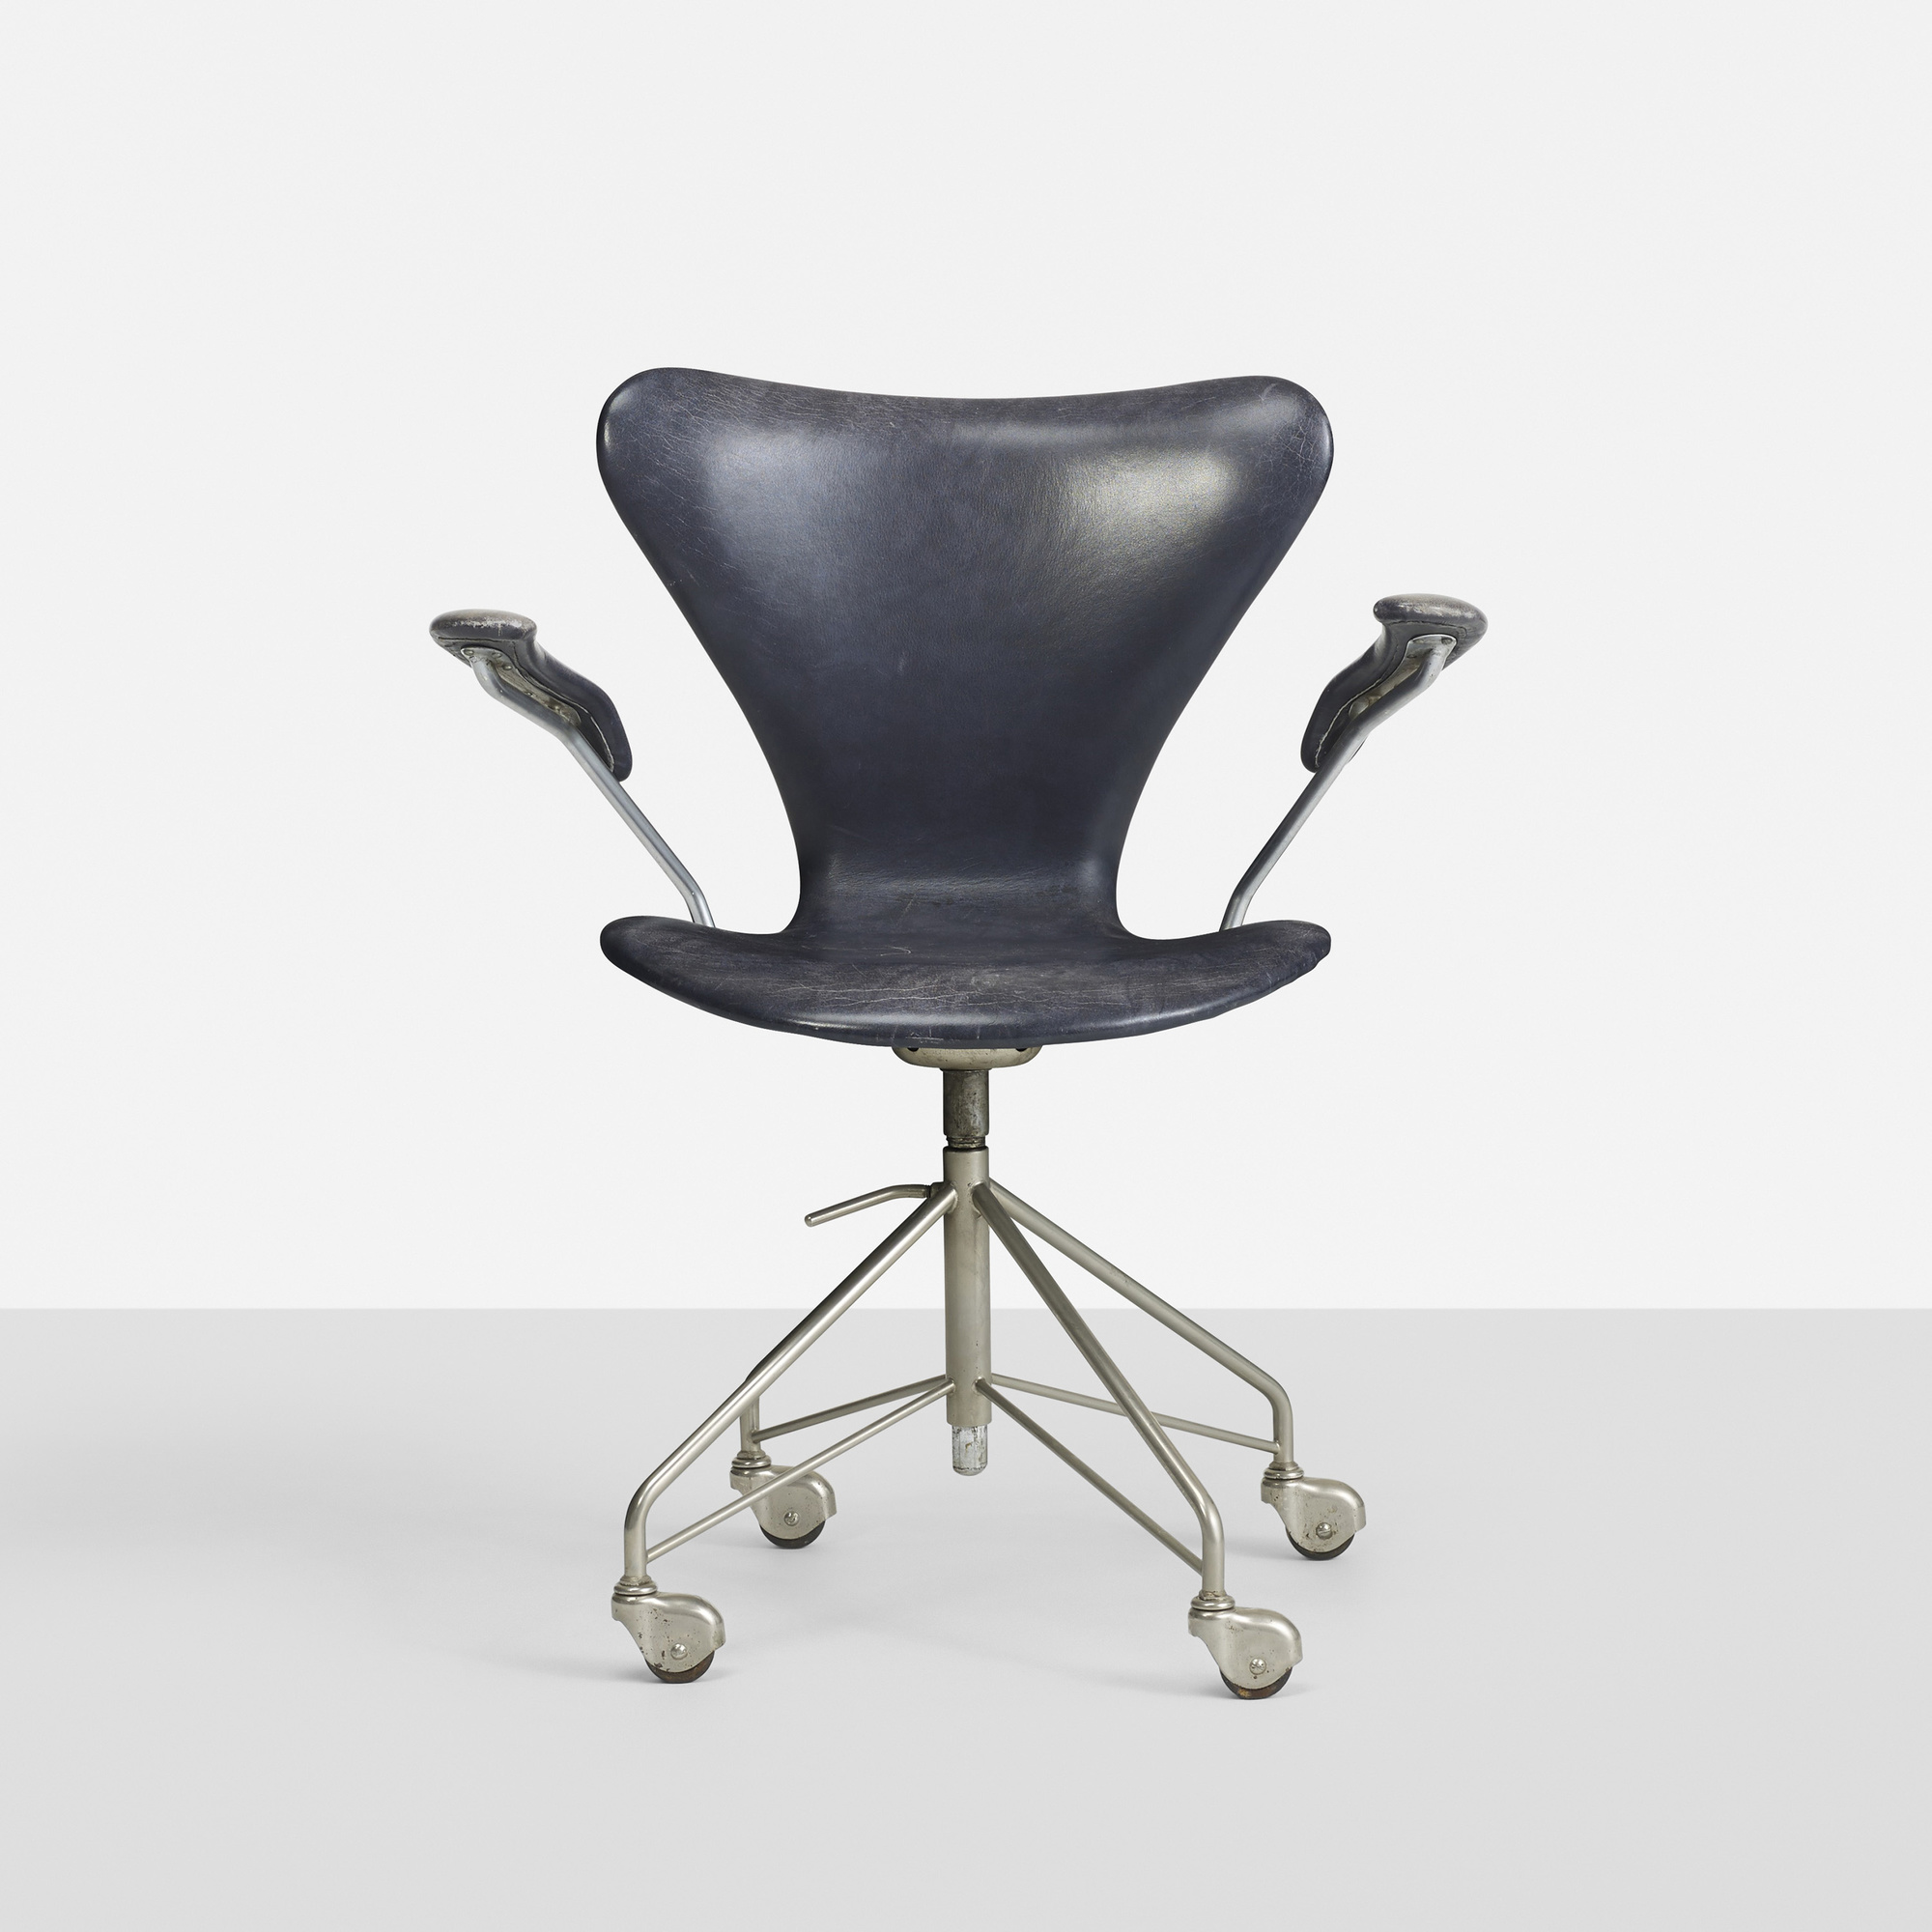 230: Arne Jacobsen / Sevener Desk Chair, Model 3117 (1 Of 2) ...